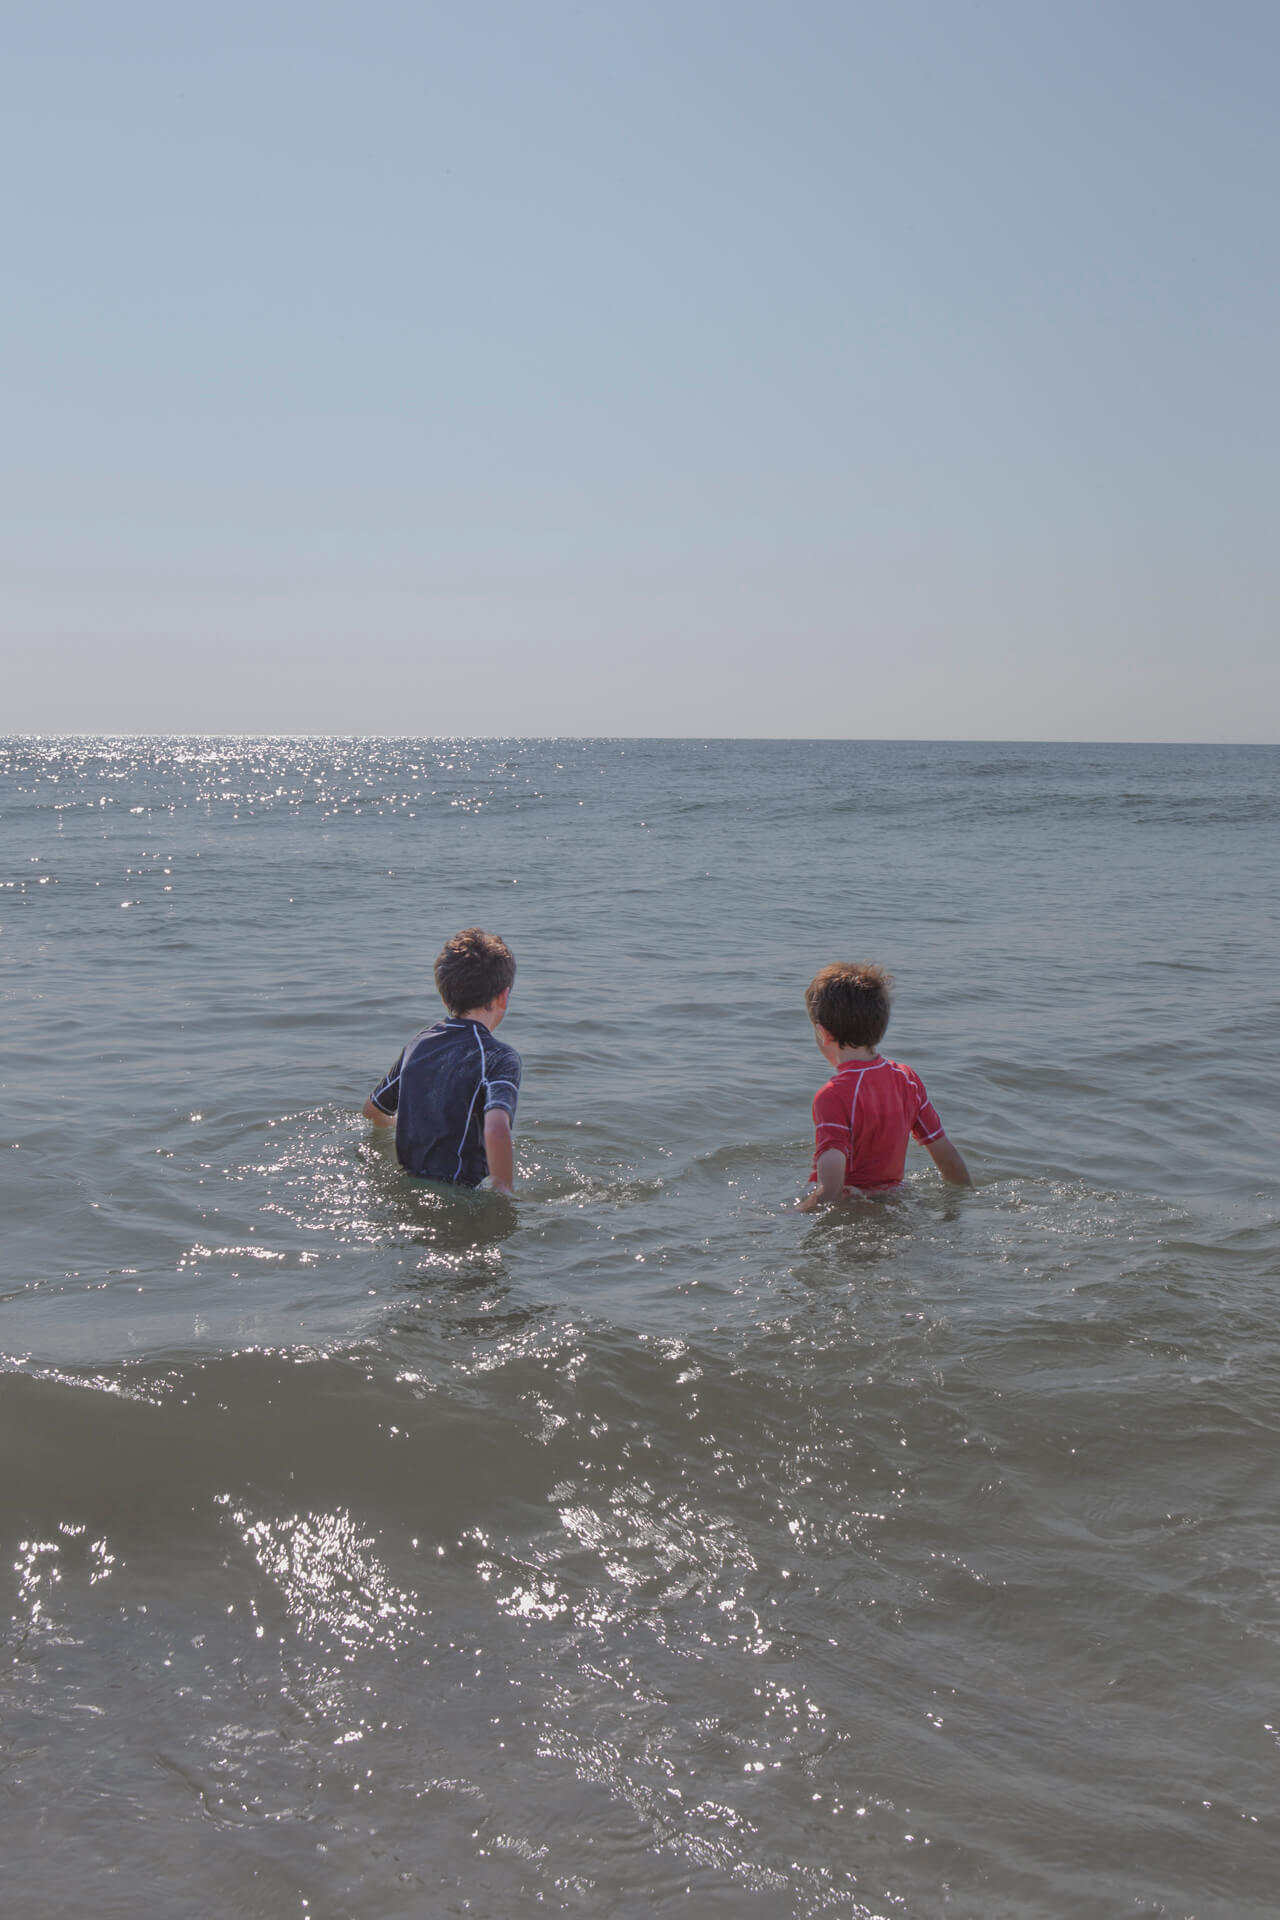 Matthew Swarts, Jonah and Dylan, Long Beach Island, New Jersey, 2012.